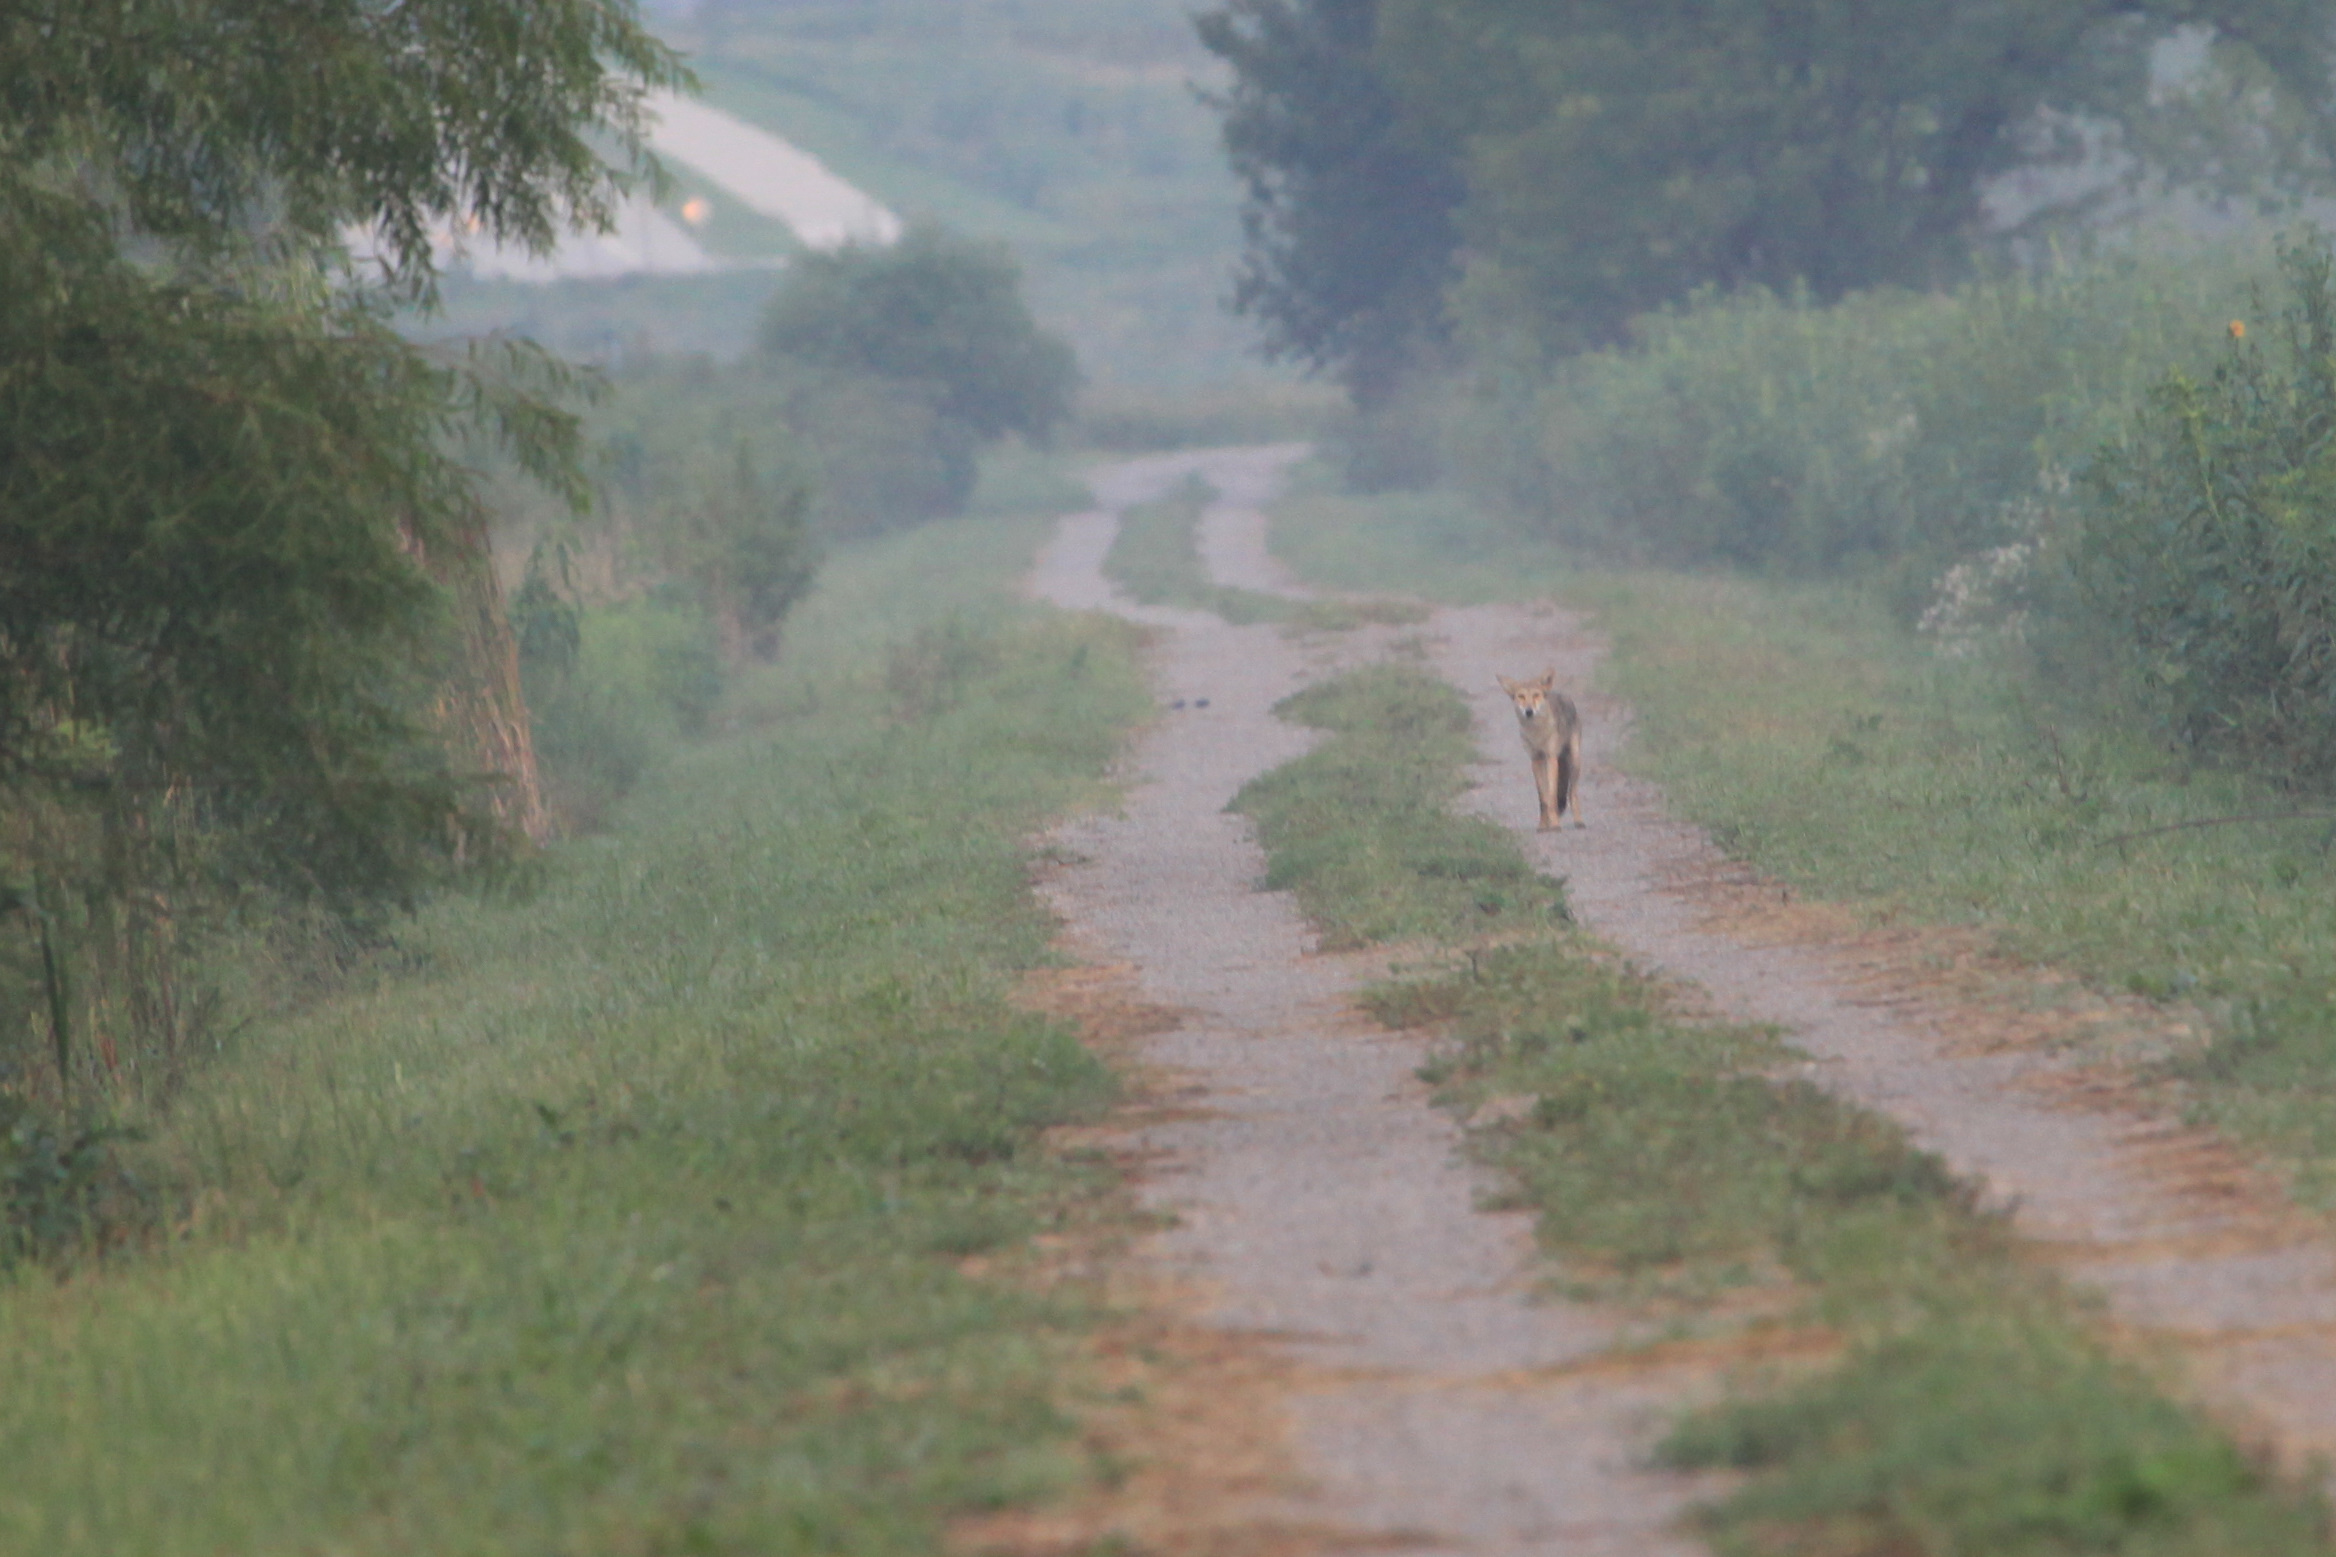 Coyote walking on path